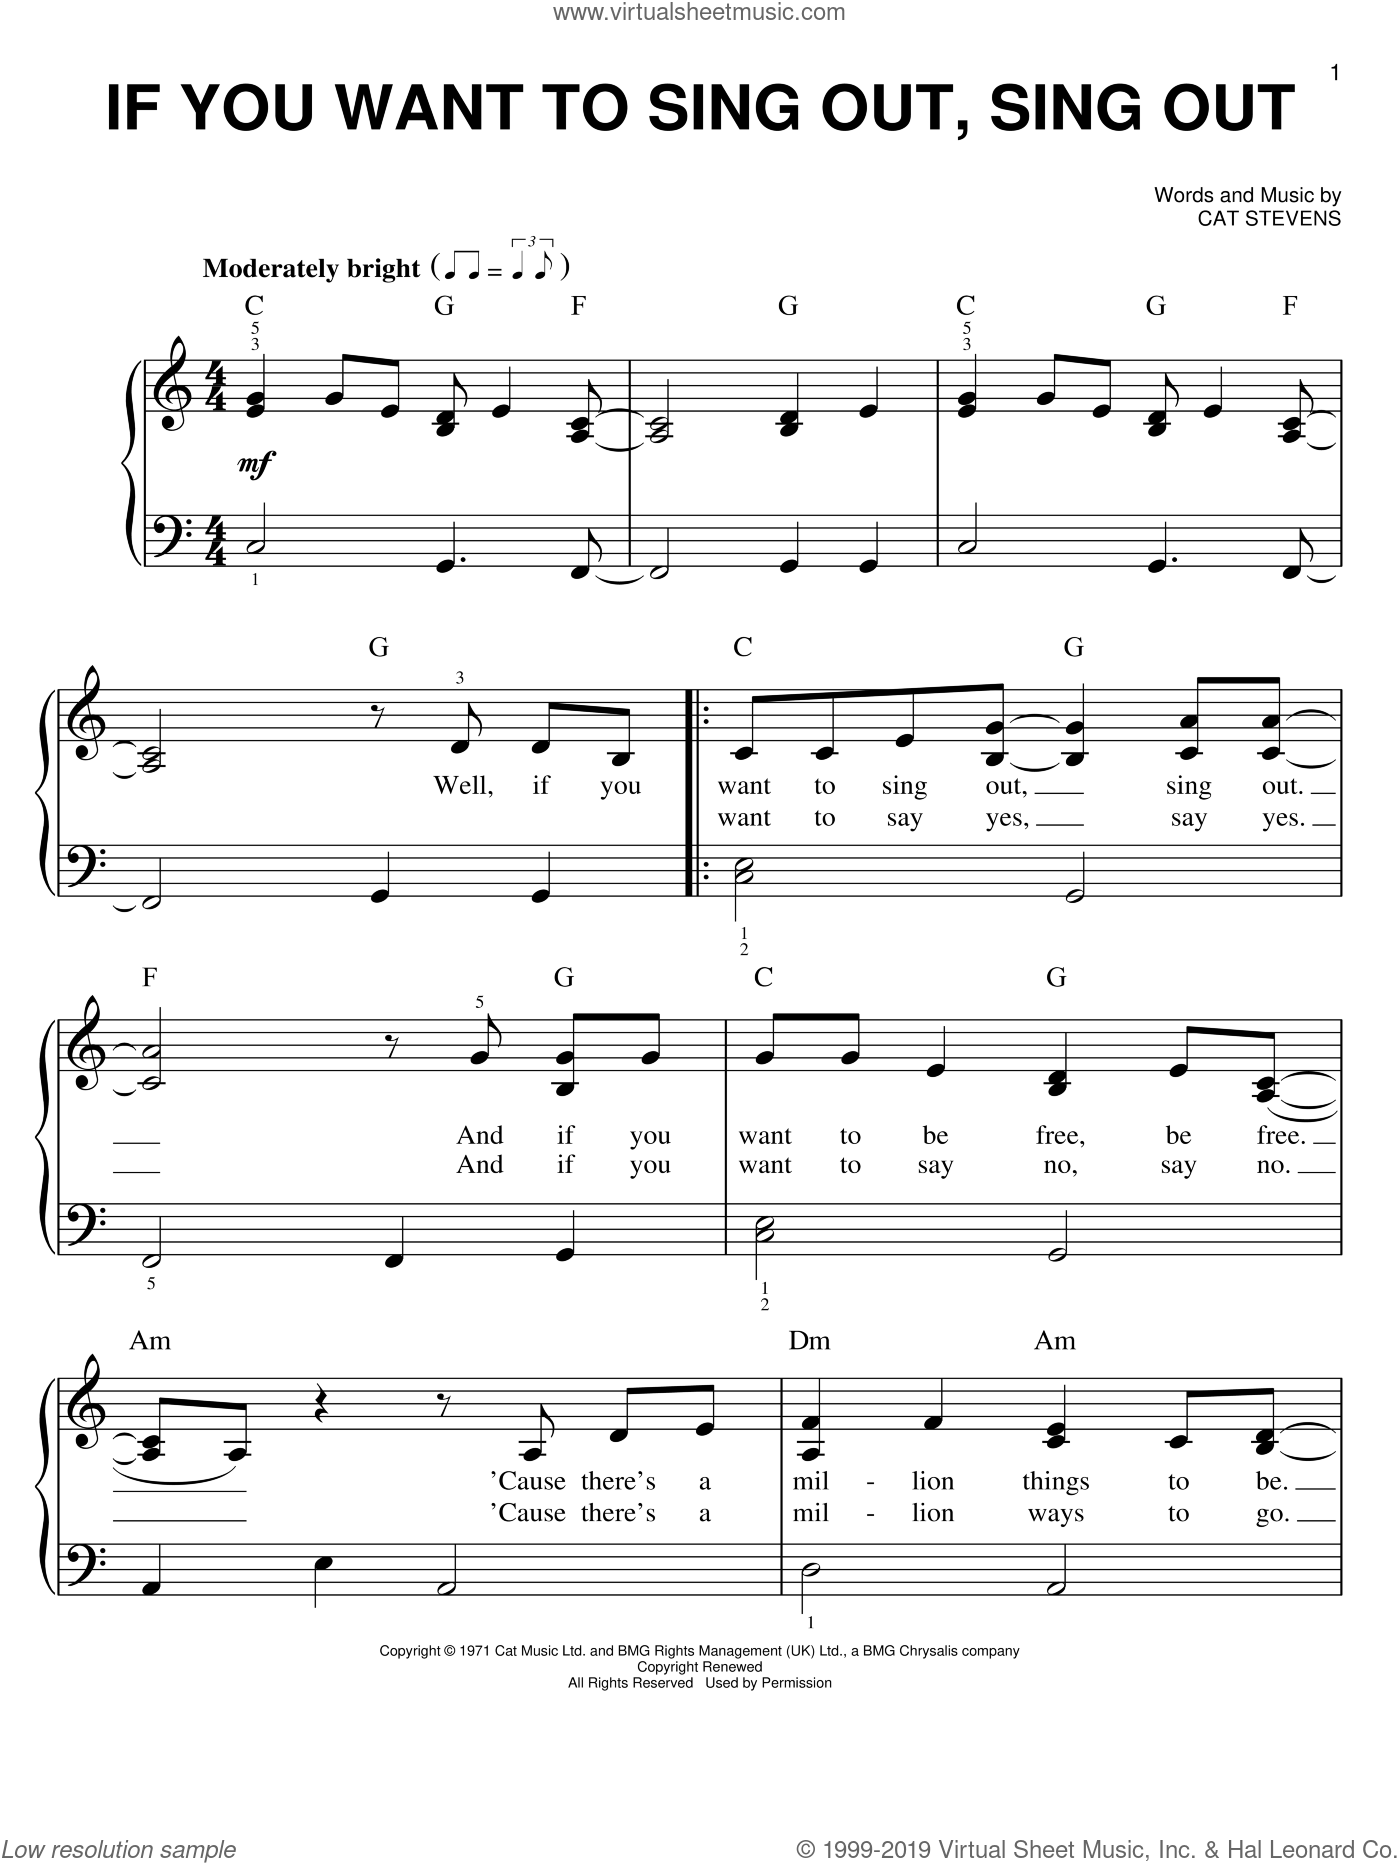 If You Want To Sing Out, Sing Out sheet music for piano solo by Cat Stevens